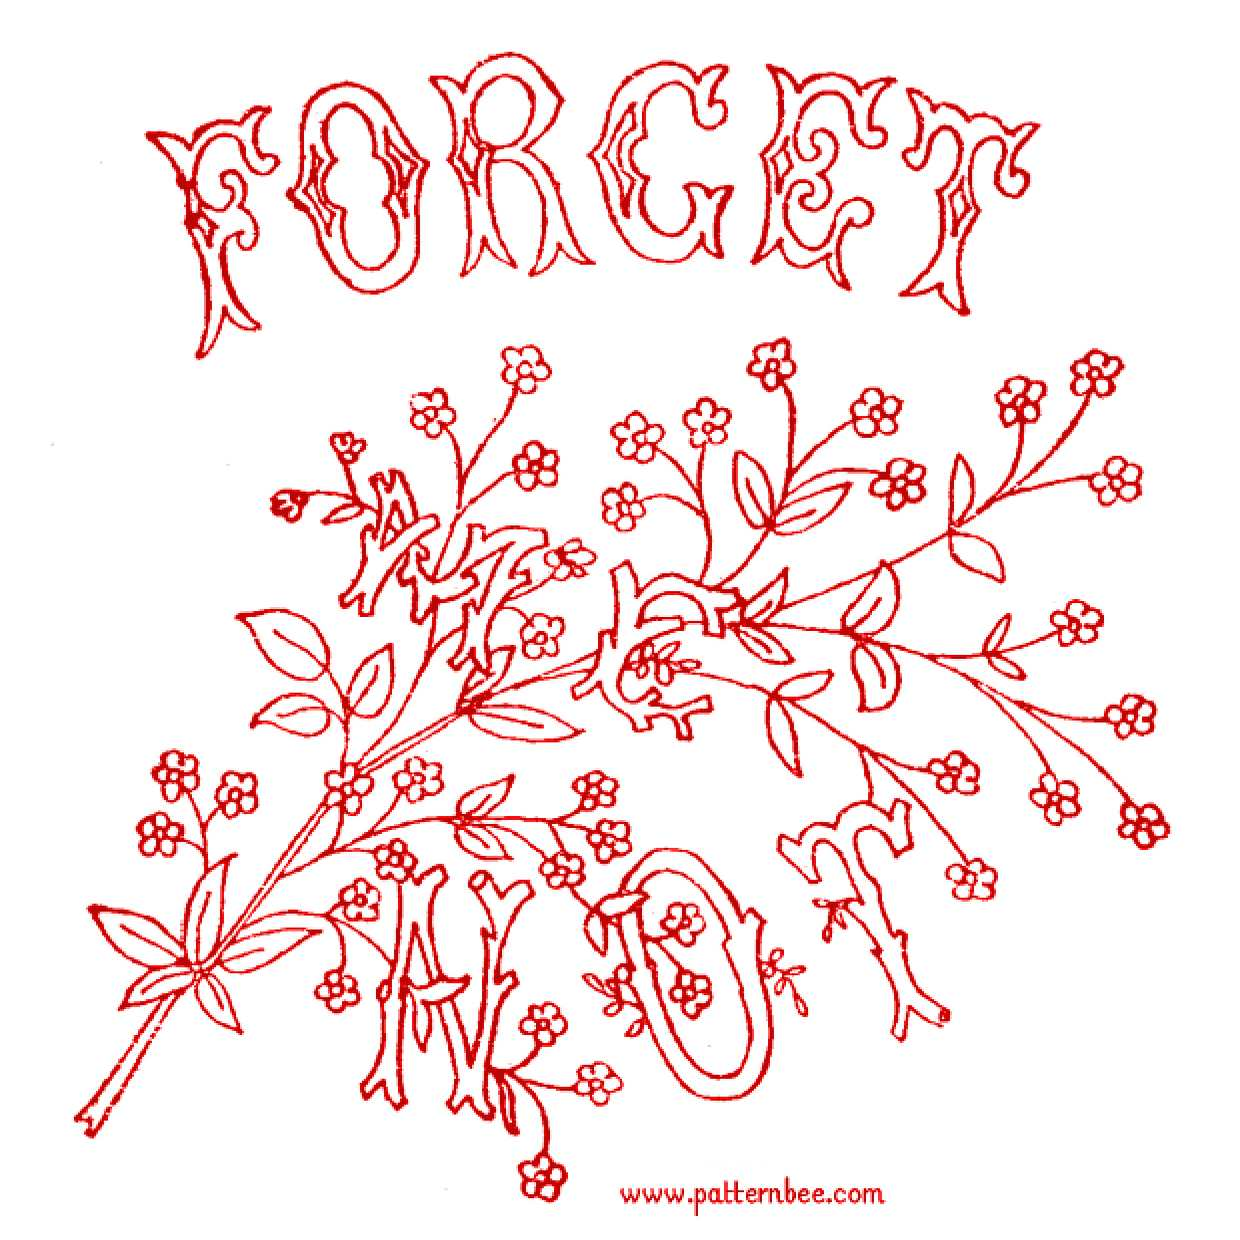 Forget Me Not Embroidery Pattern